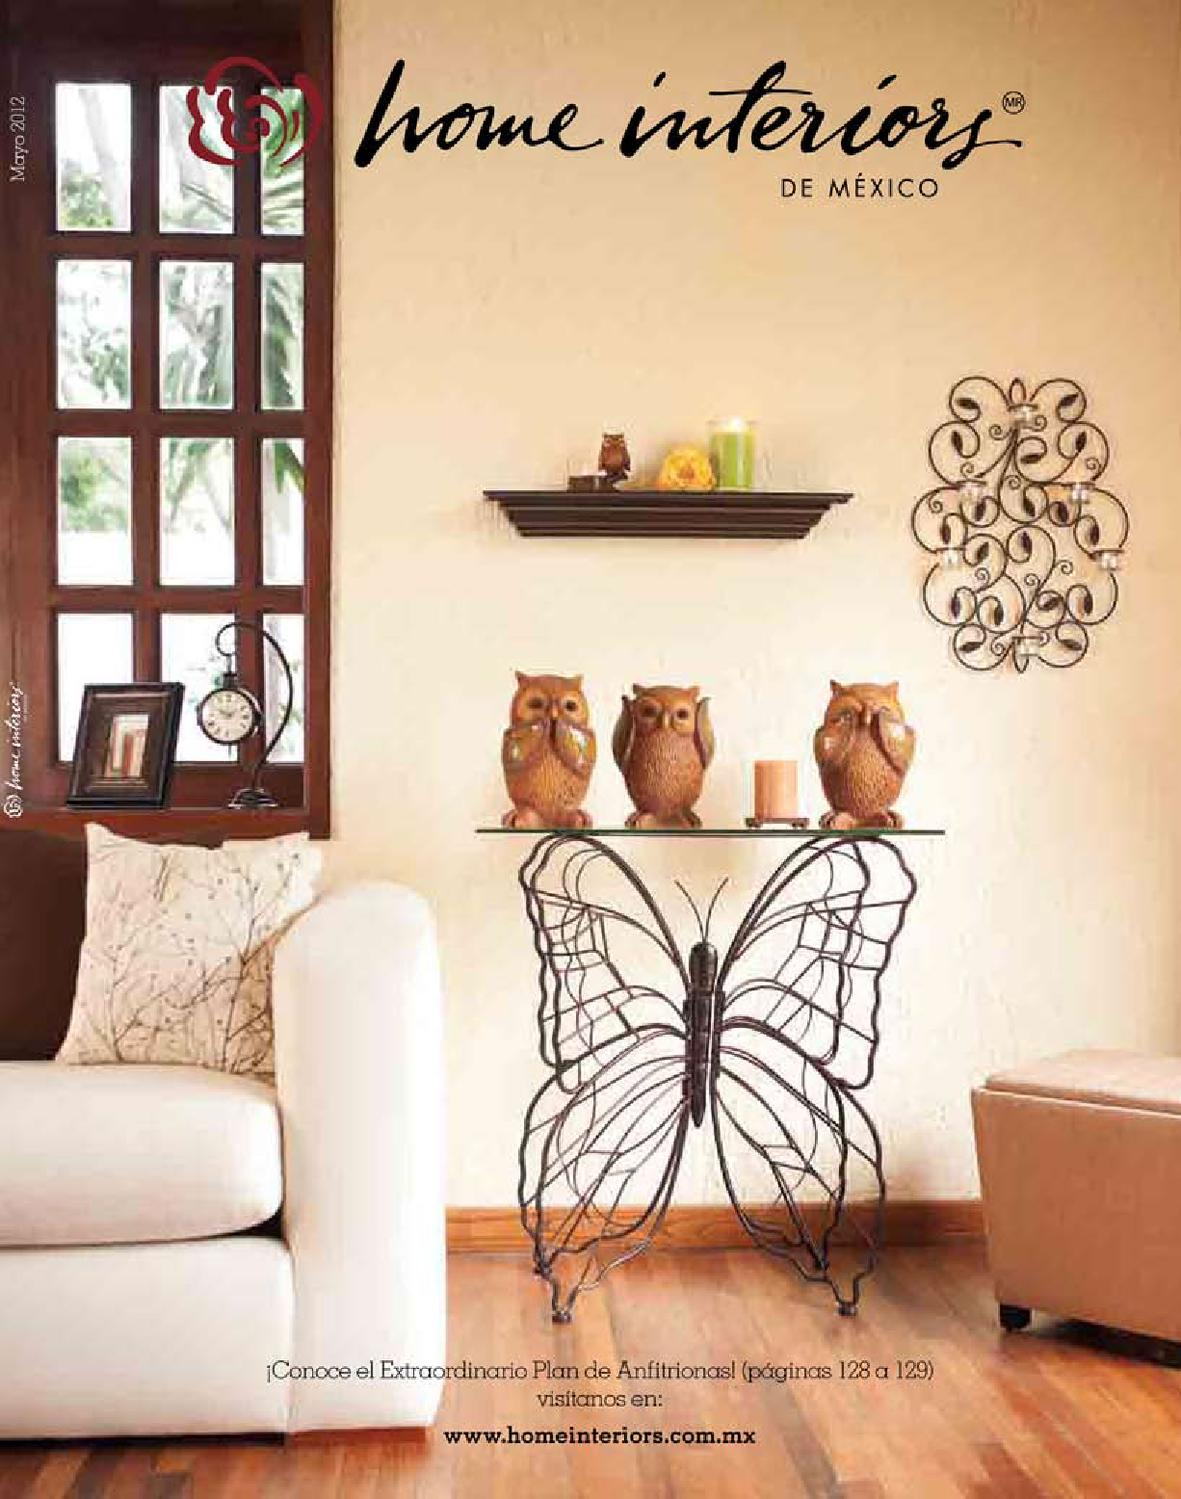 Home Interiors En Linea Home Interiors En Linea Home Interiors   Catalogo  De Home Interiors